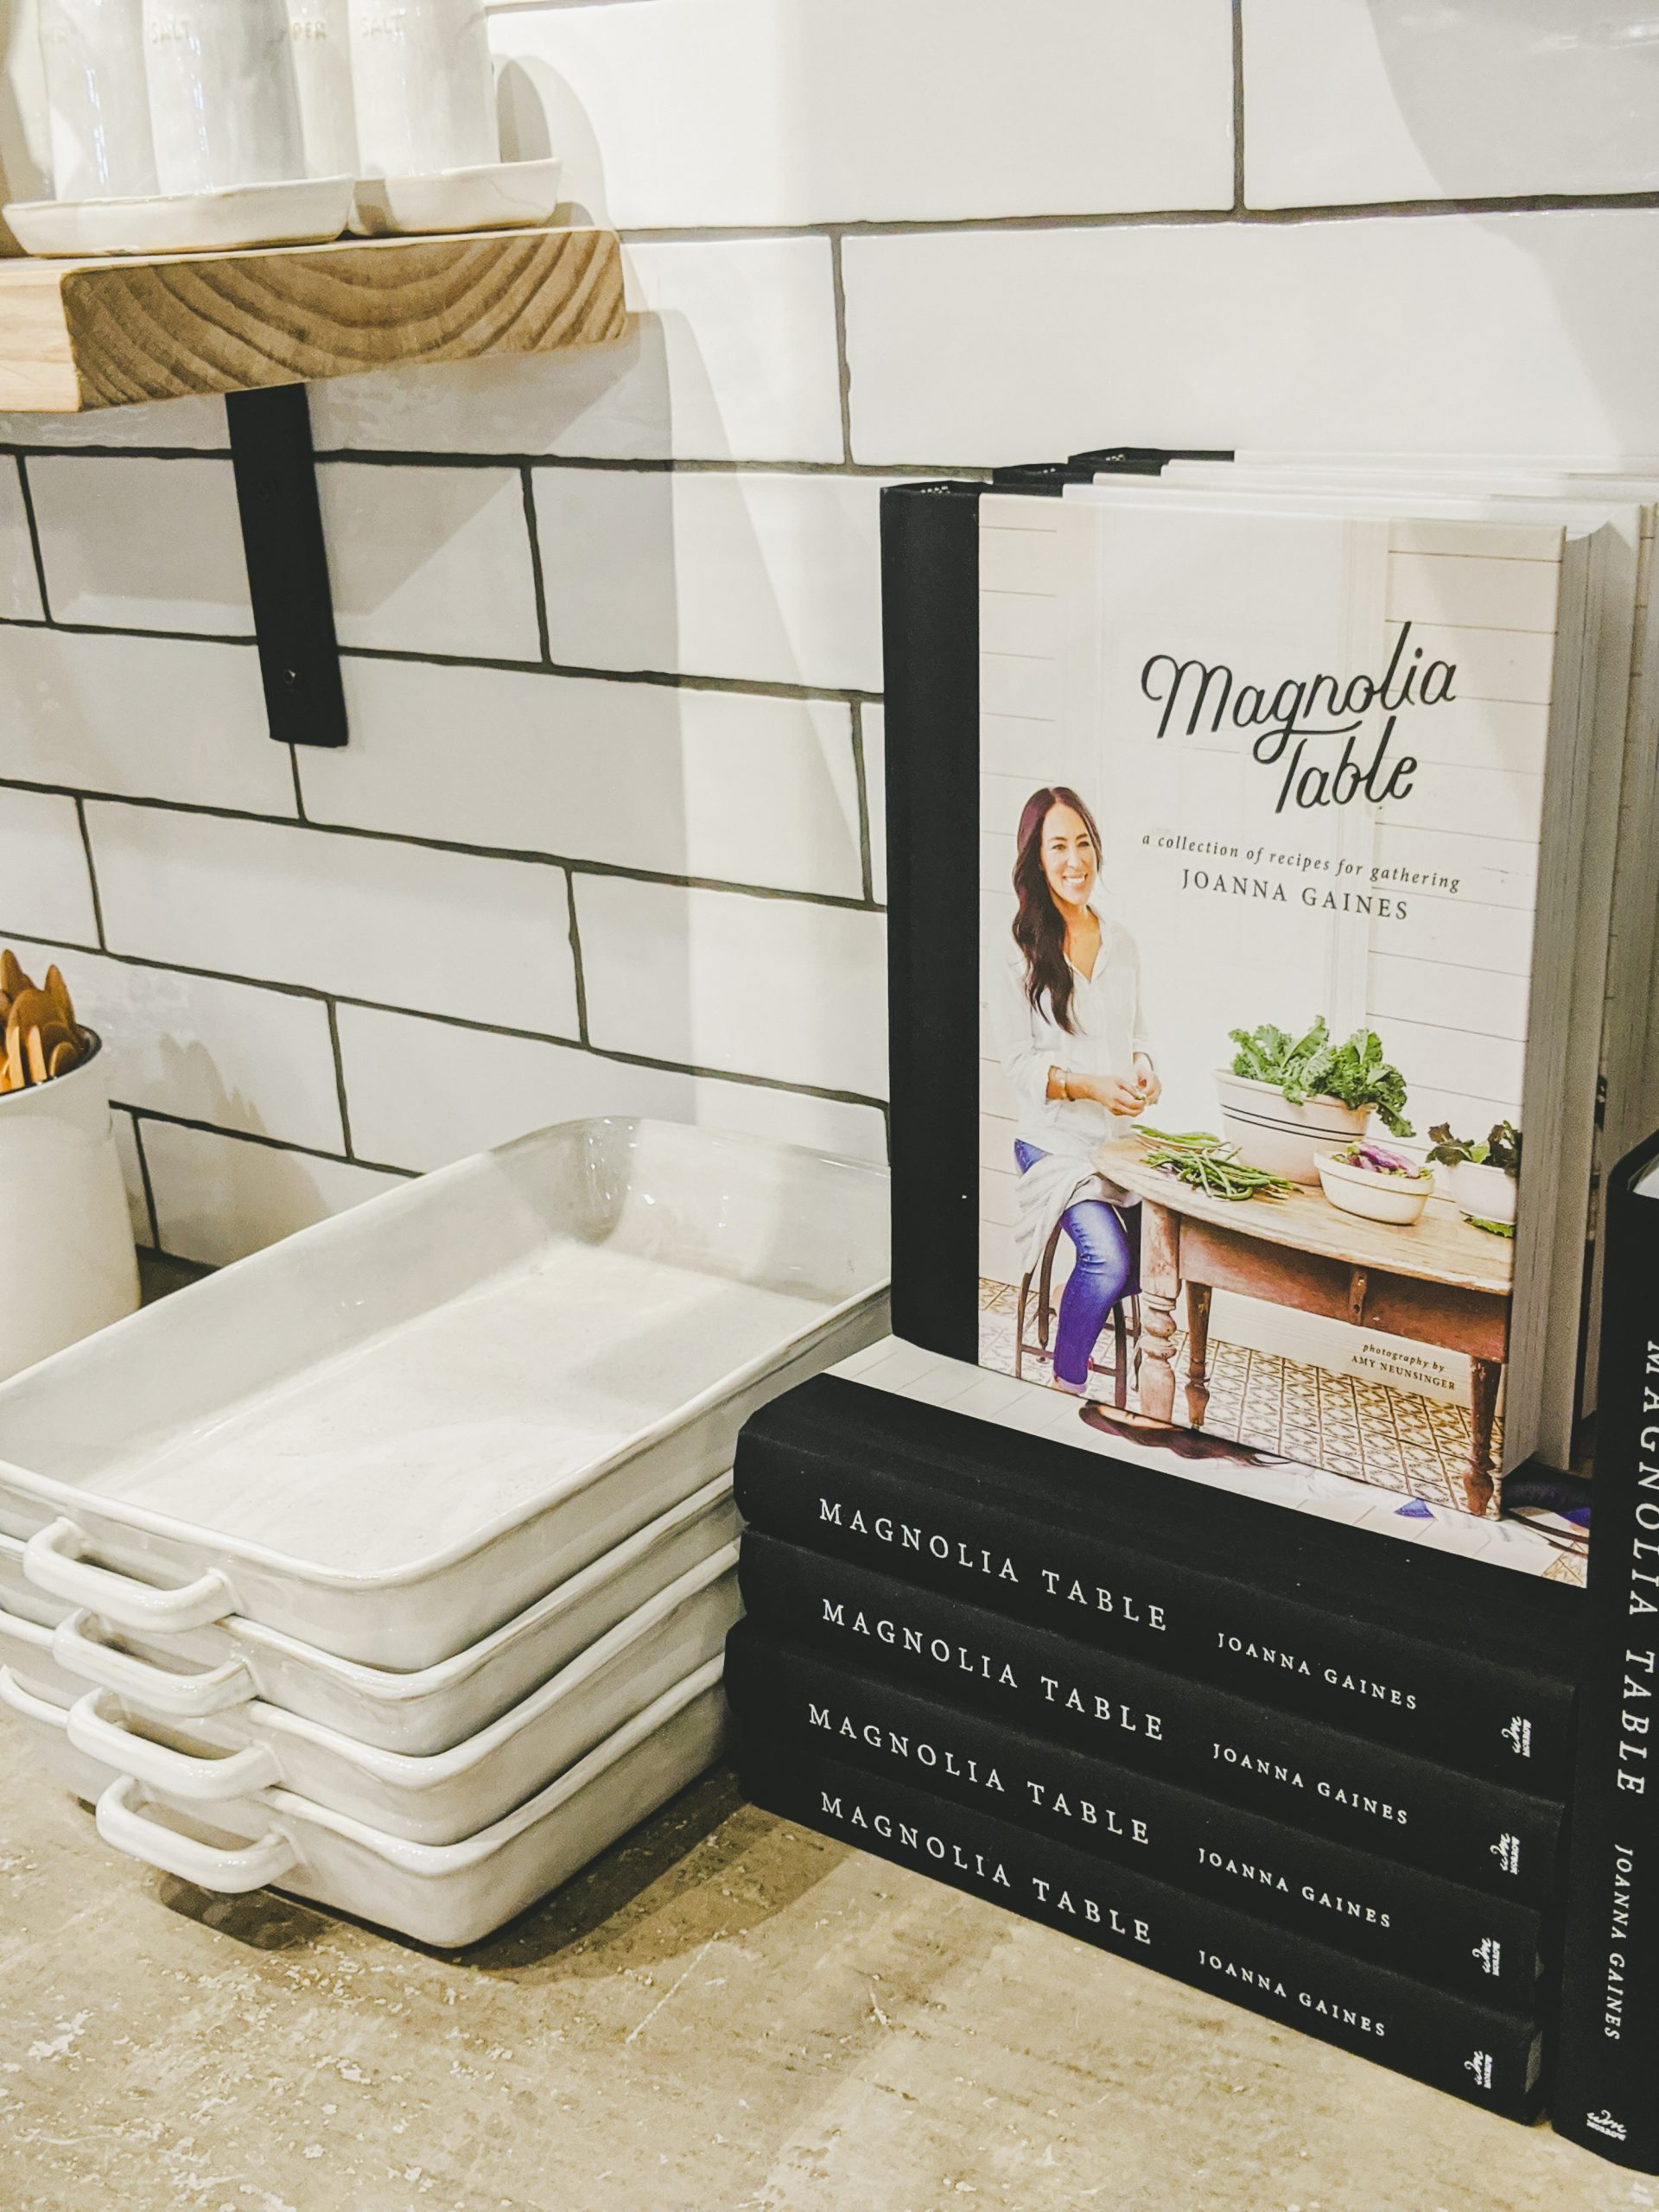 magnolia market kitchen display with cookbook